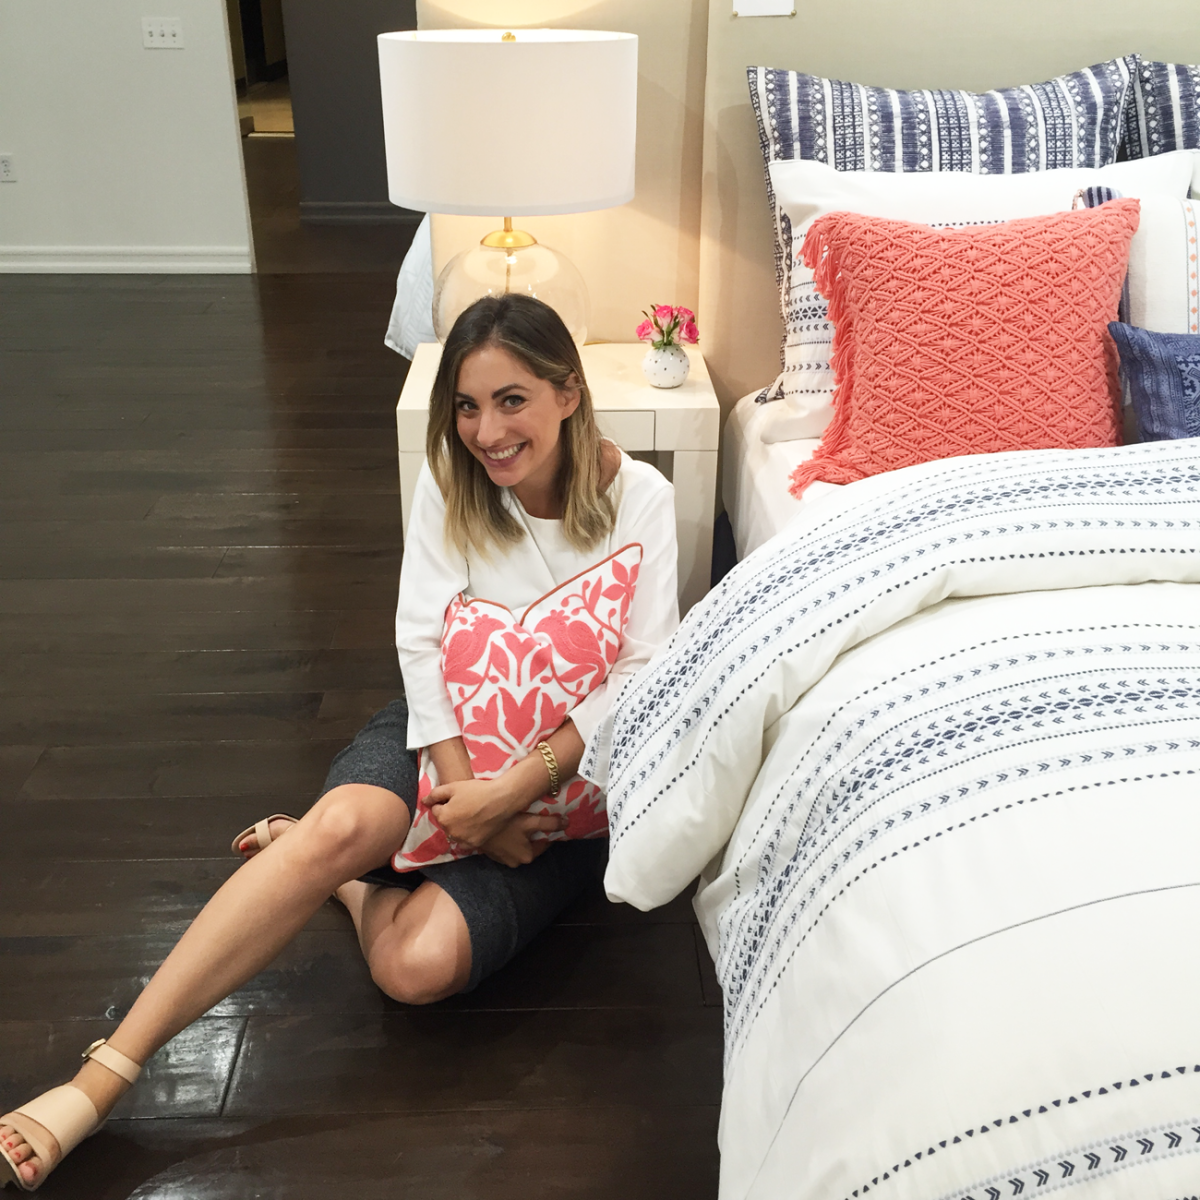 {A sneak peek at my new bedding/lighting line from last week's visit to the showroom}